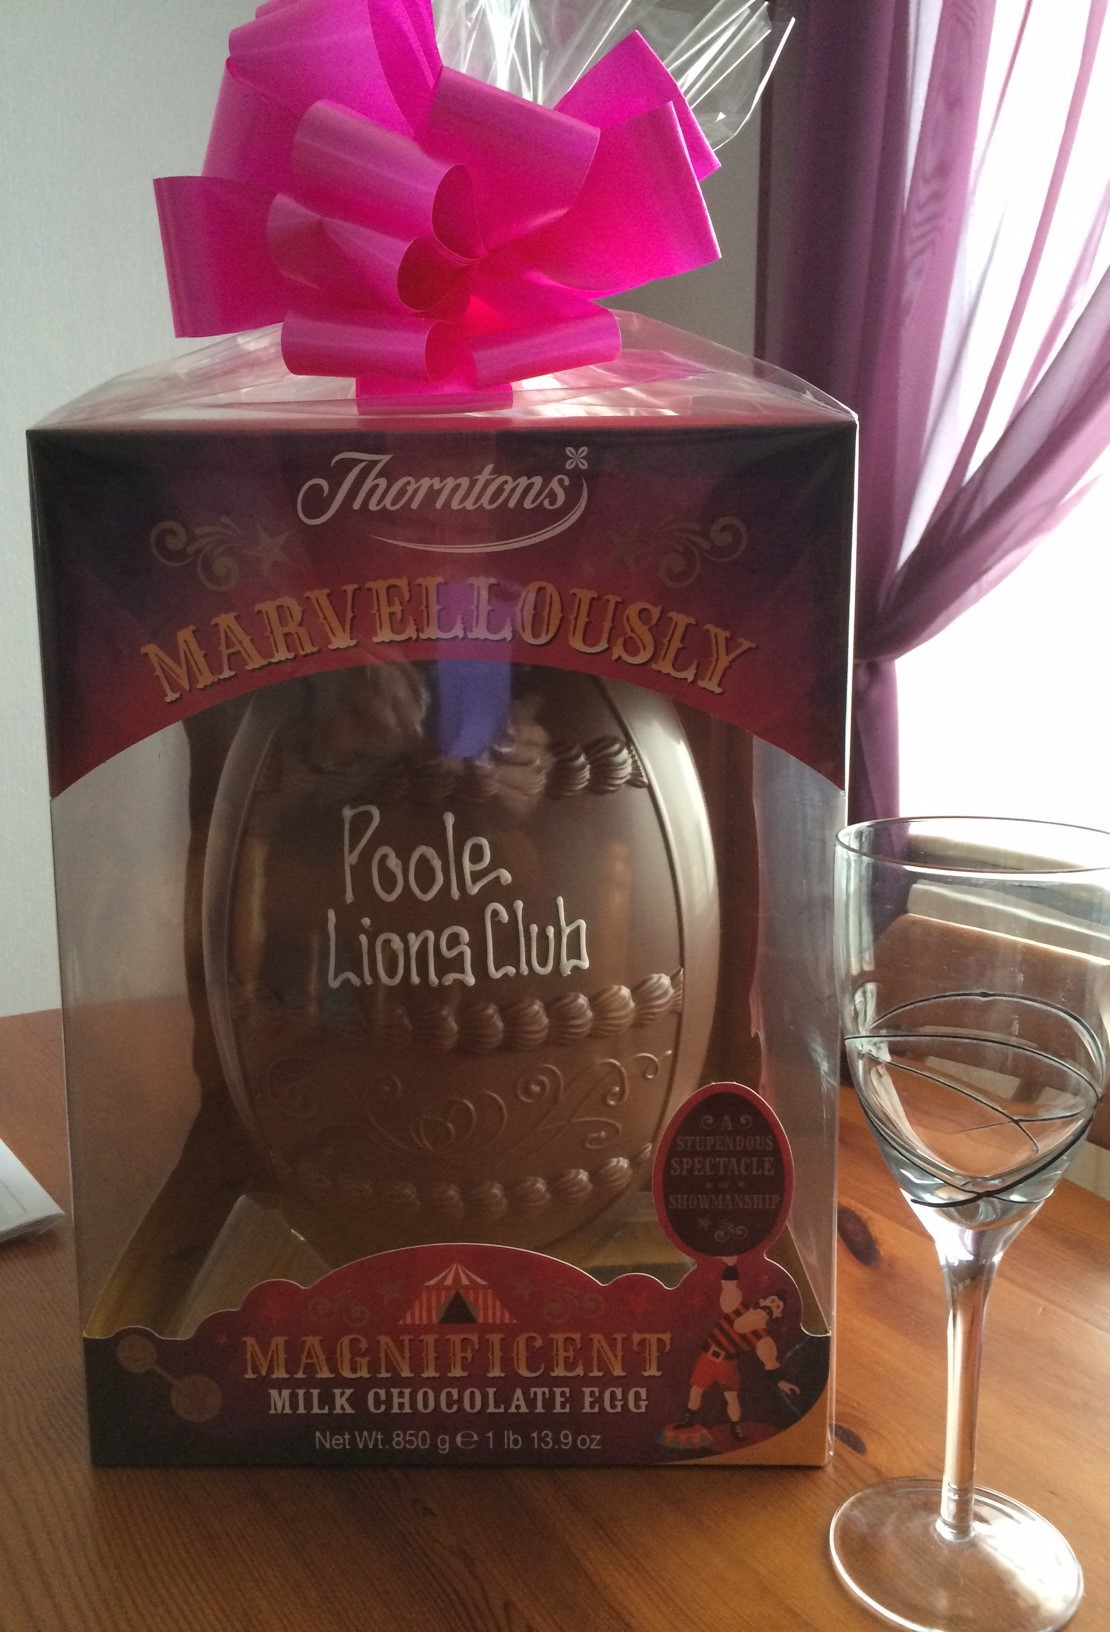 Thank you to our Easter Egg Raffle supporters